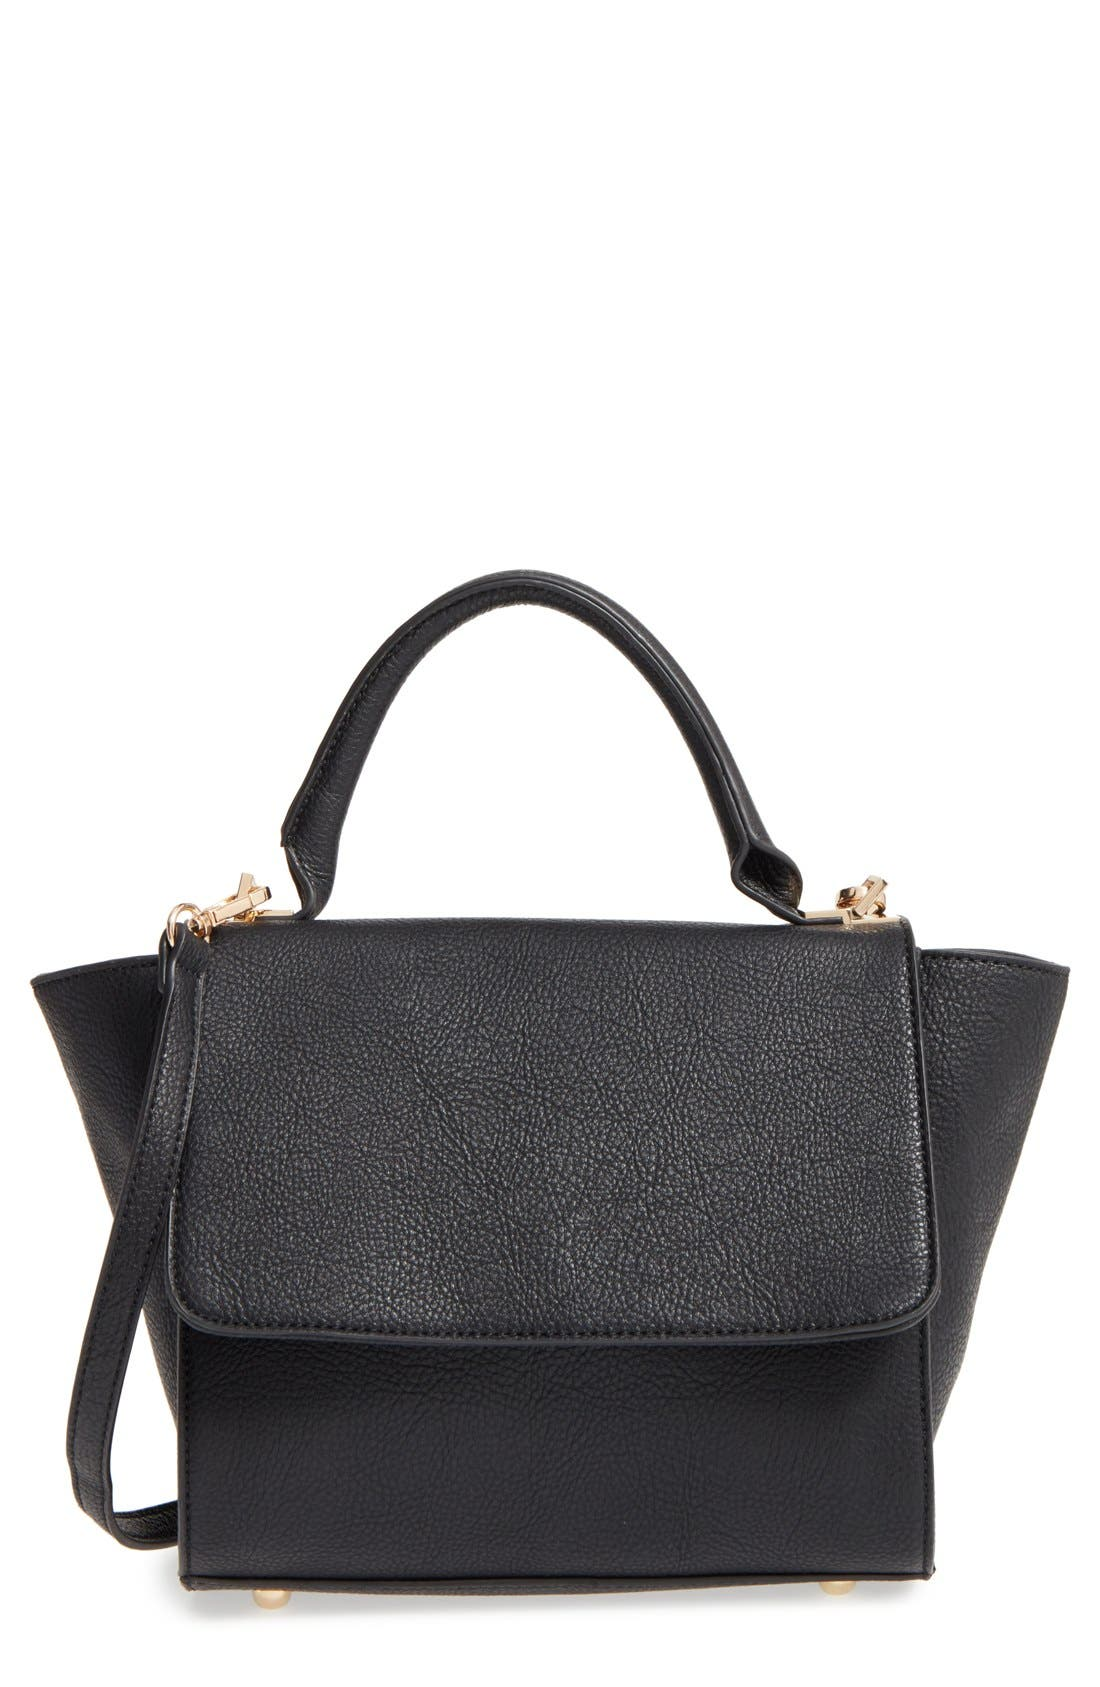 Alternate Image 1 Selected - Sole Society 'Kimmi' Top Handle Satchel